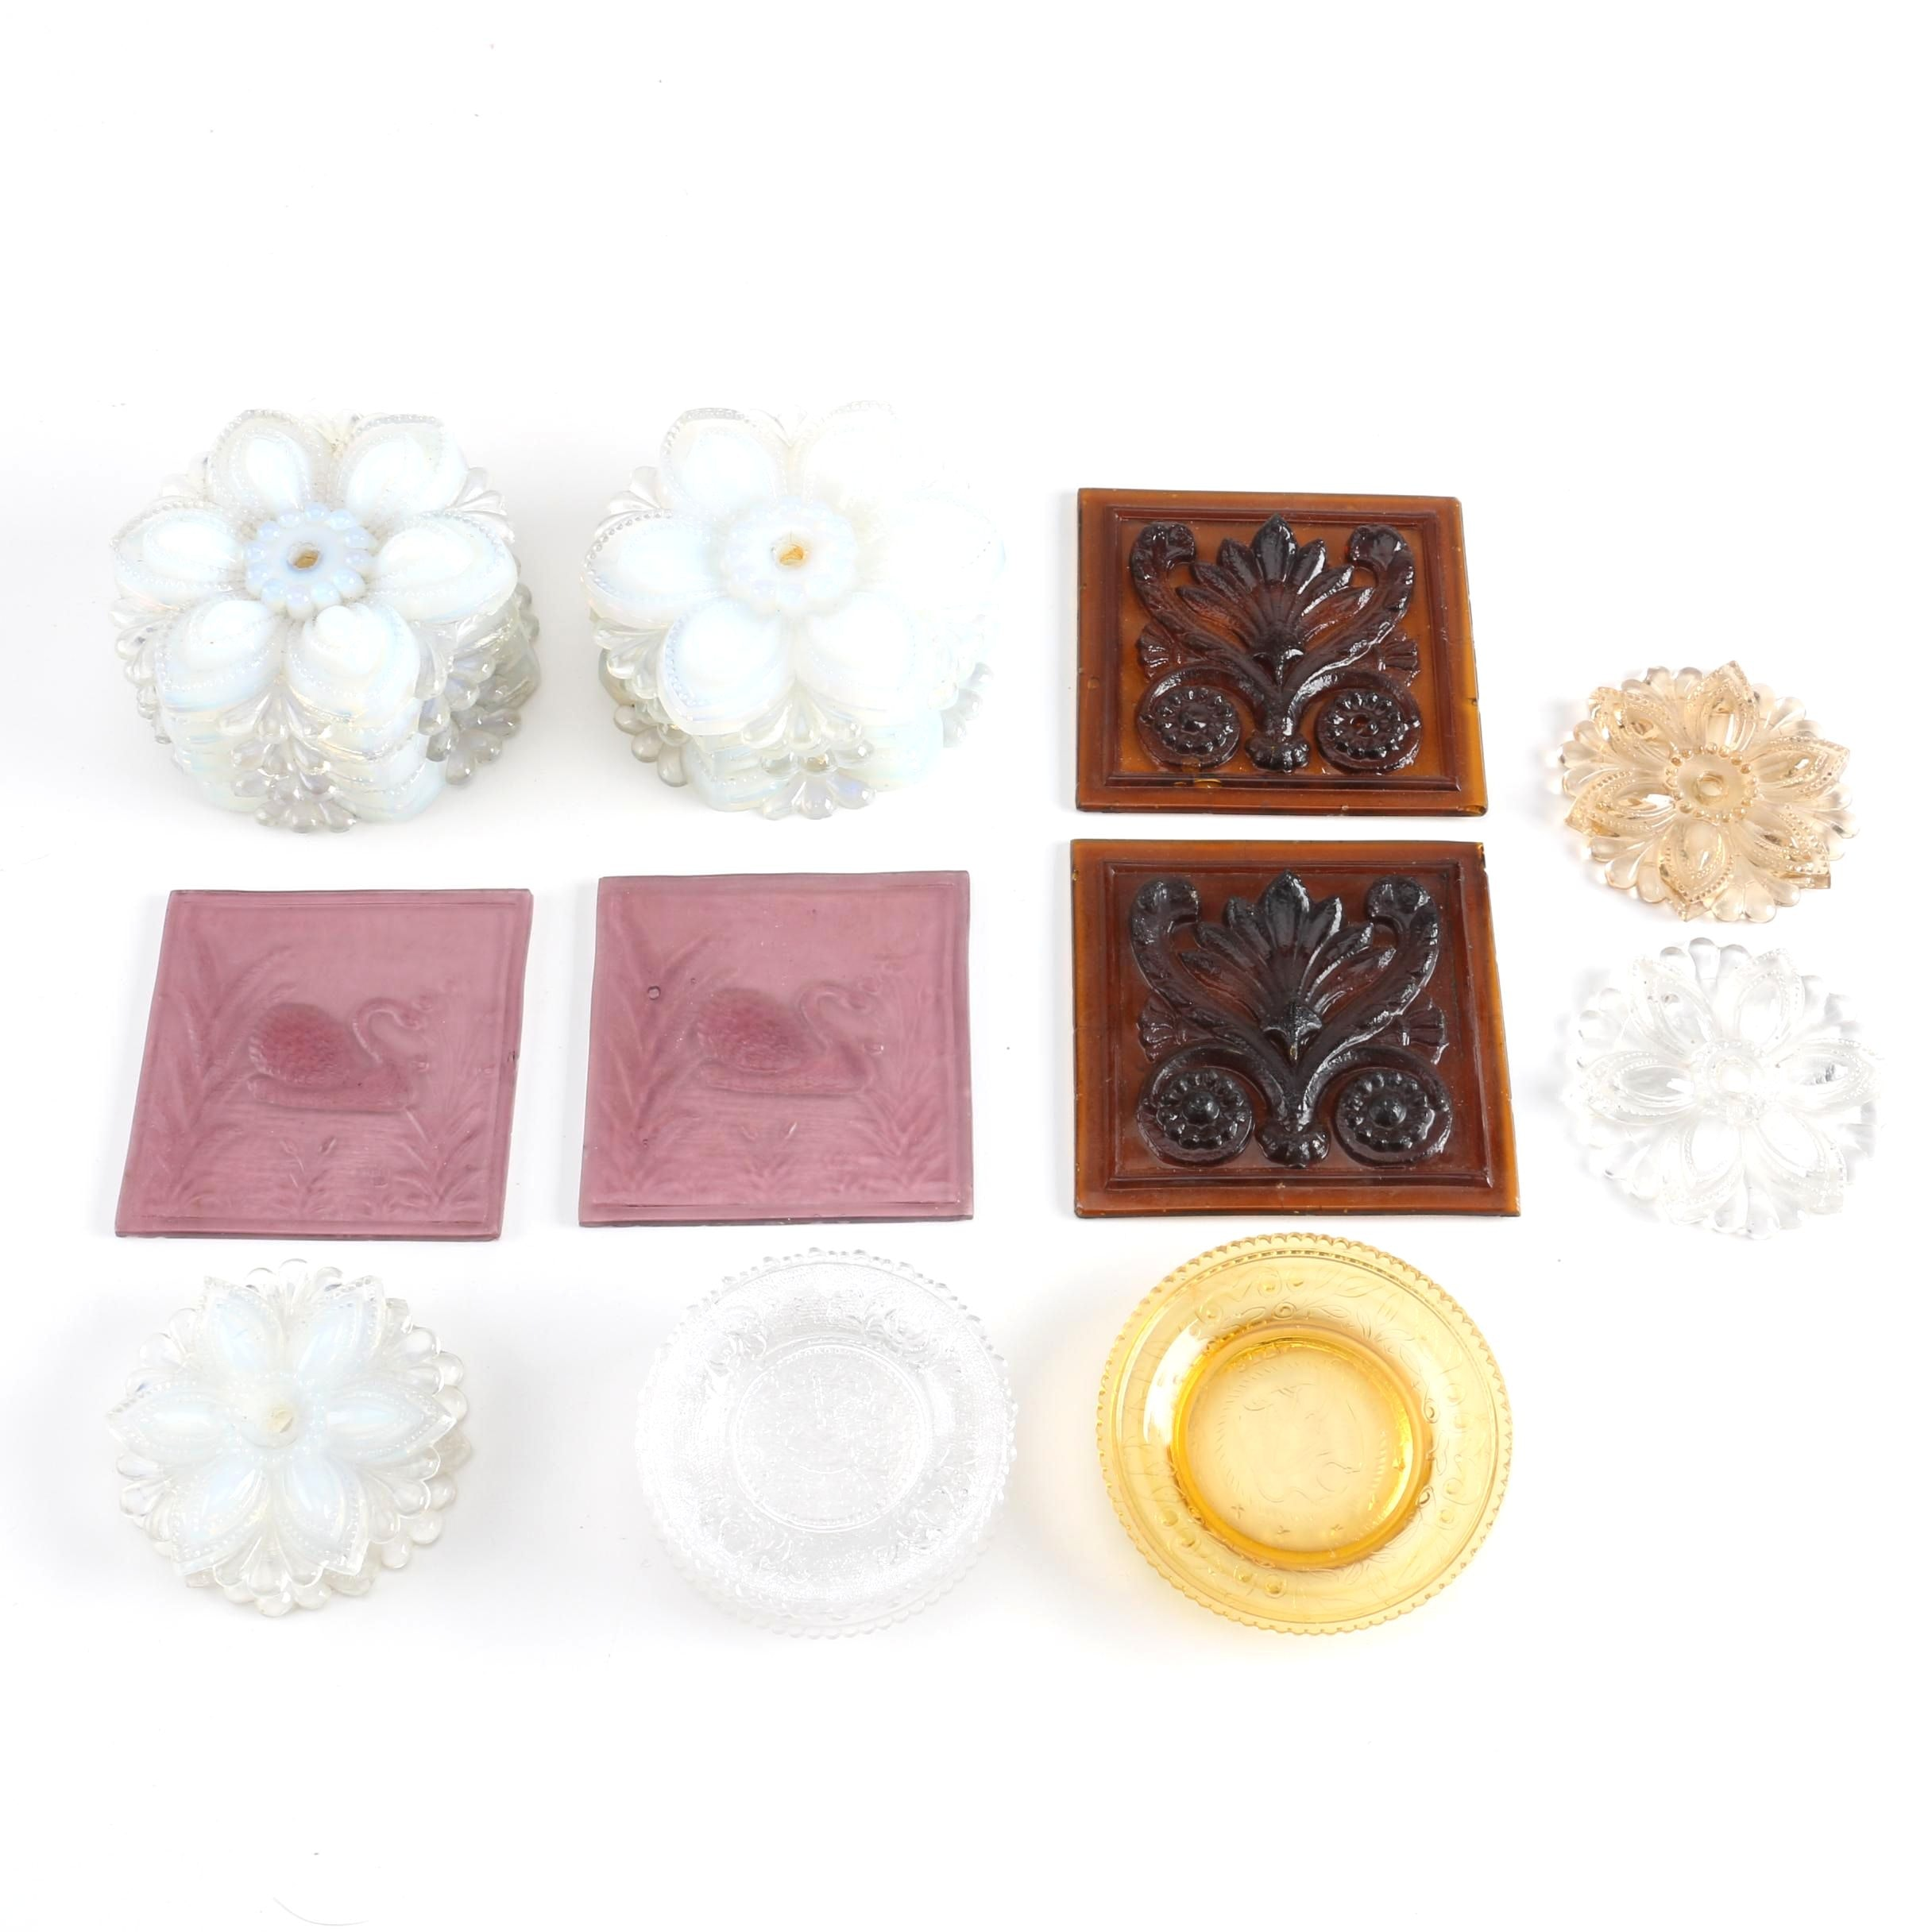 Ornate Glass Curtain Tie Backs and Coasters